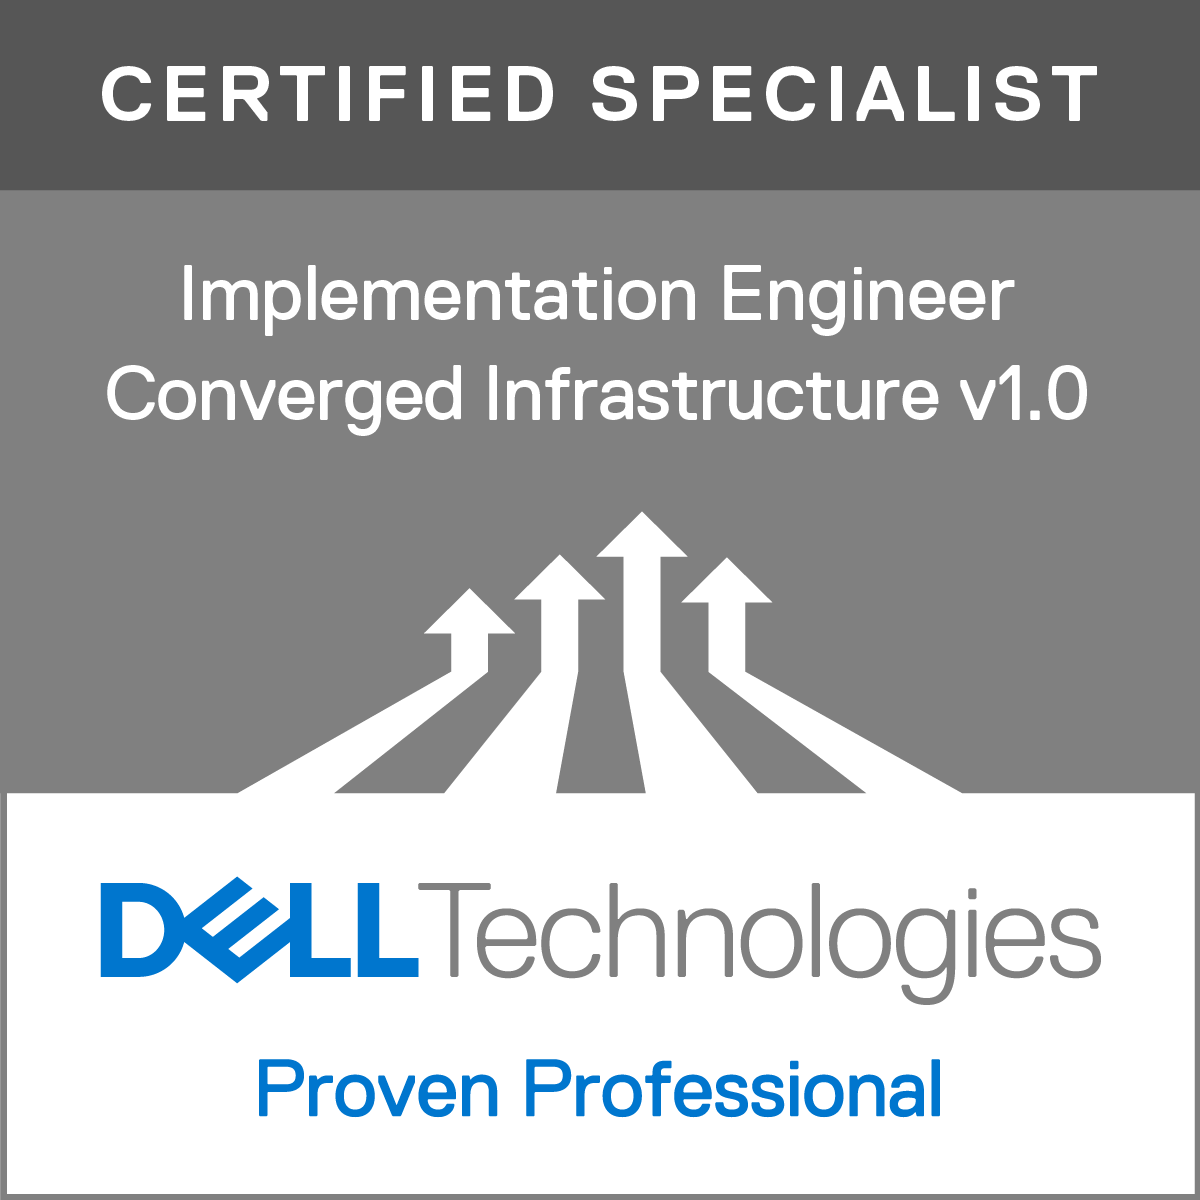 Specialist - Implementation Engineer, Converged Infrastructure Version 1.0